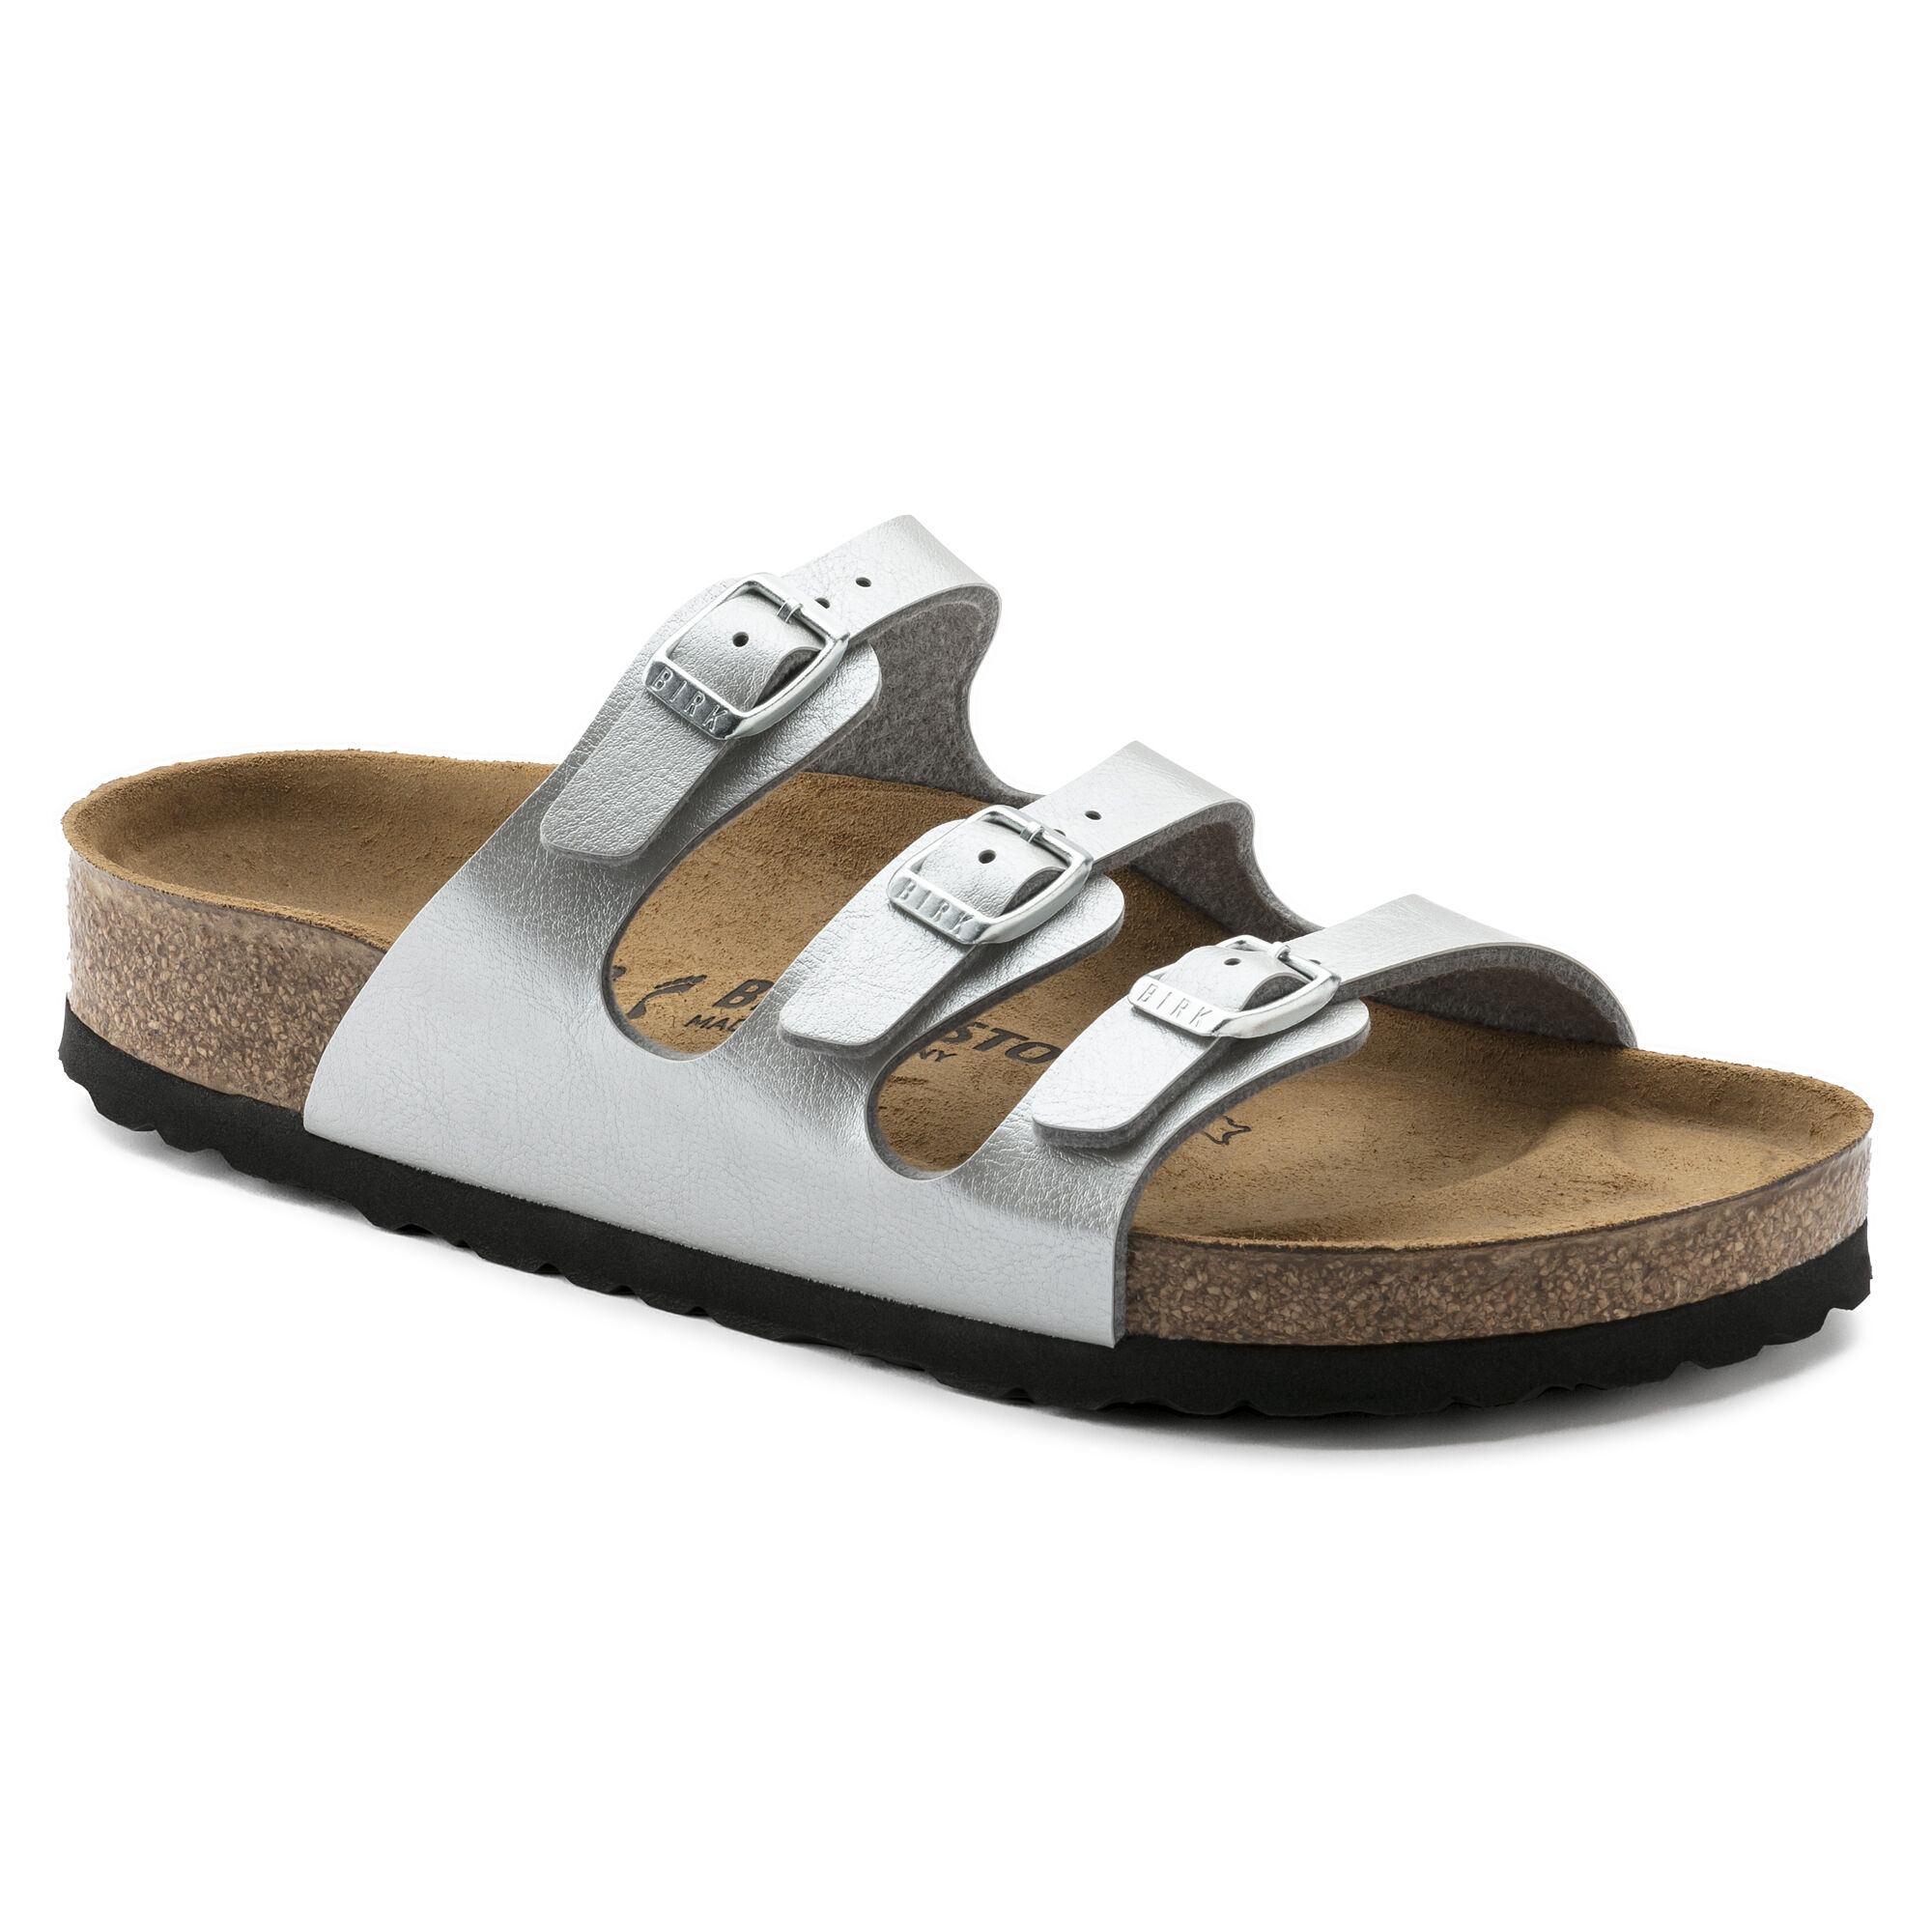 BIRKENSTOCK Florida Graceful Silber Birko Flor Graceful